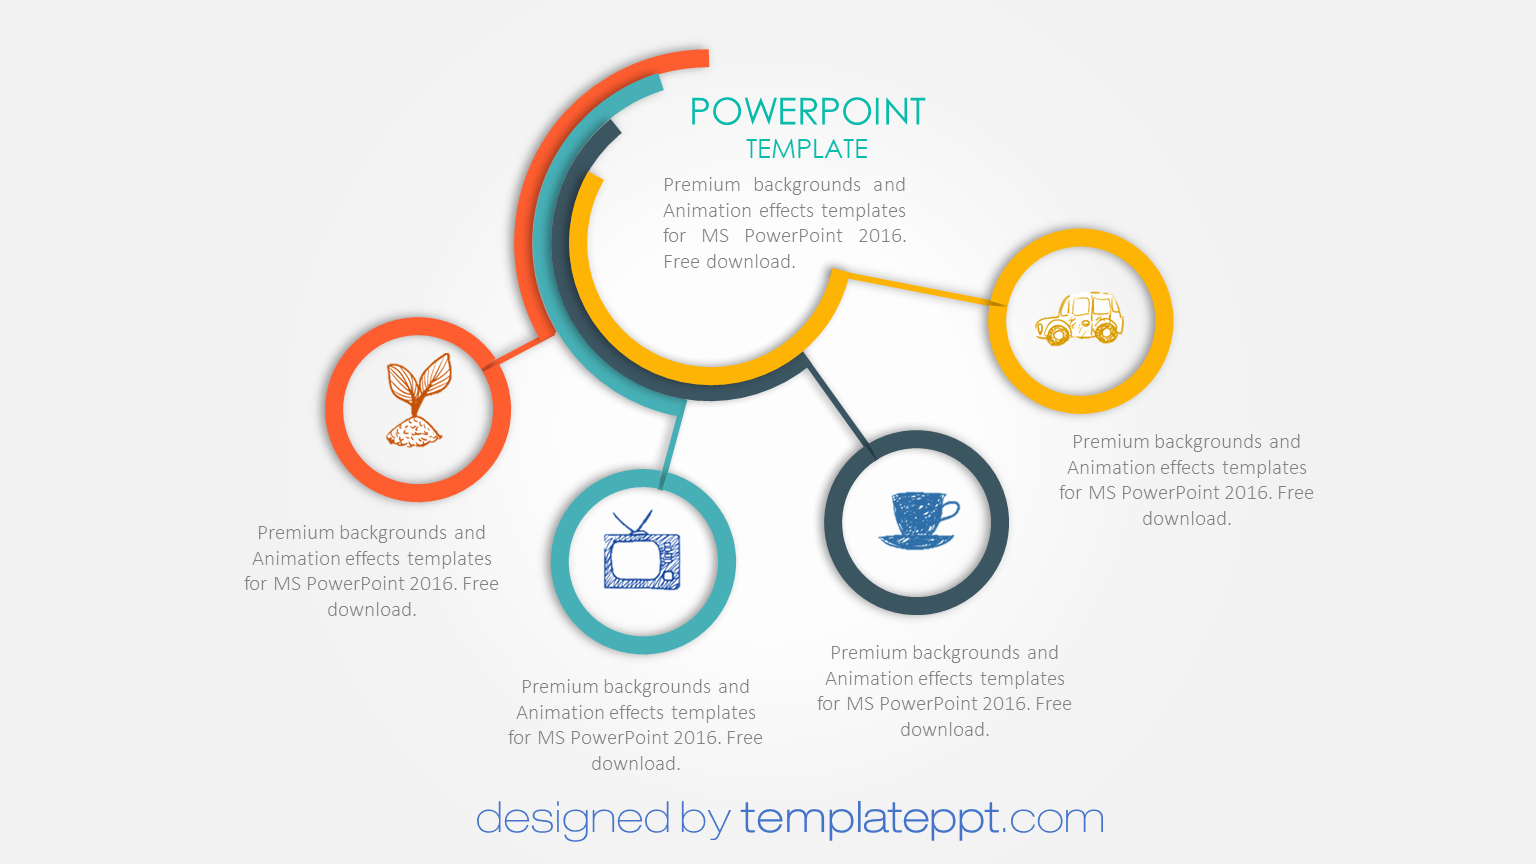 Microsoft Free Power Point Templates New Professional Powerpoint Templates Free 2016